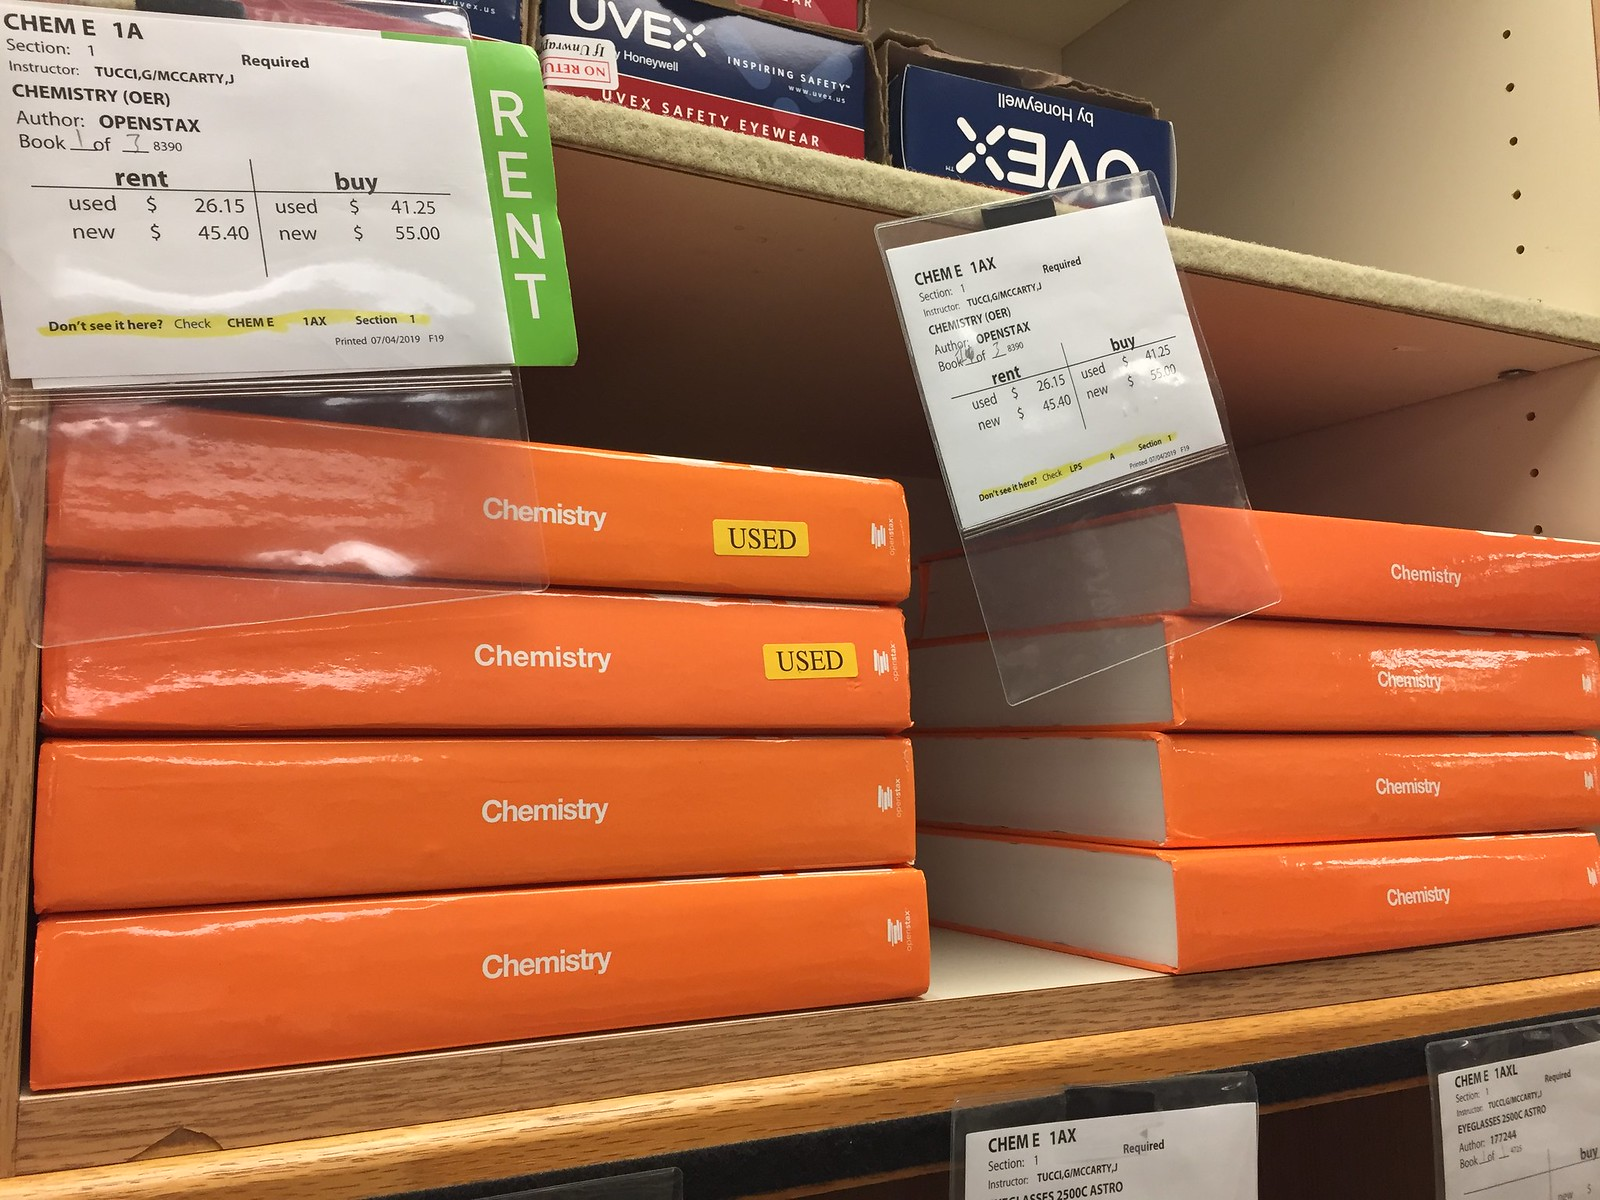 New and used chemistry textbooks stacked on a shelf